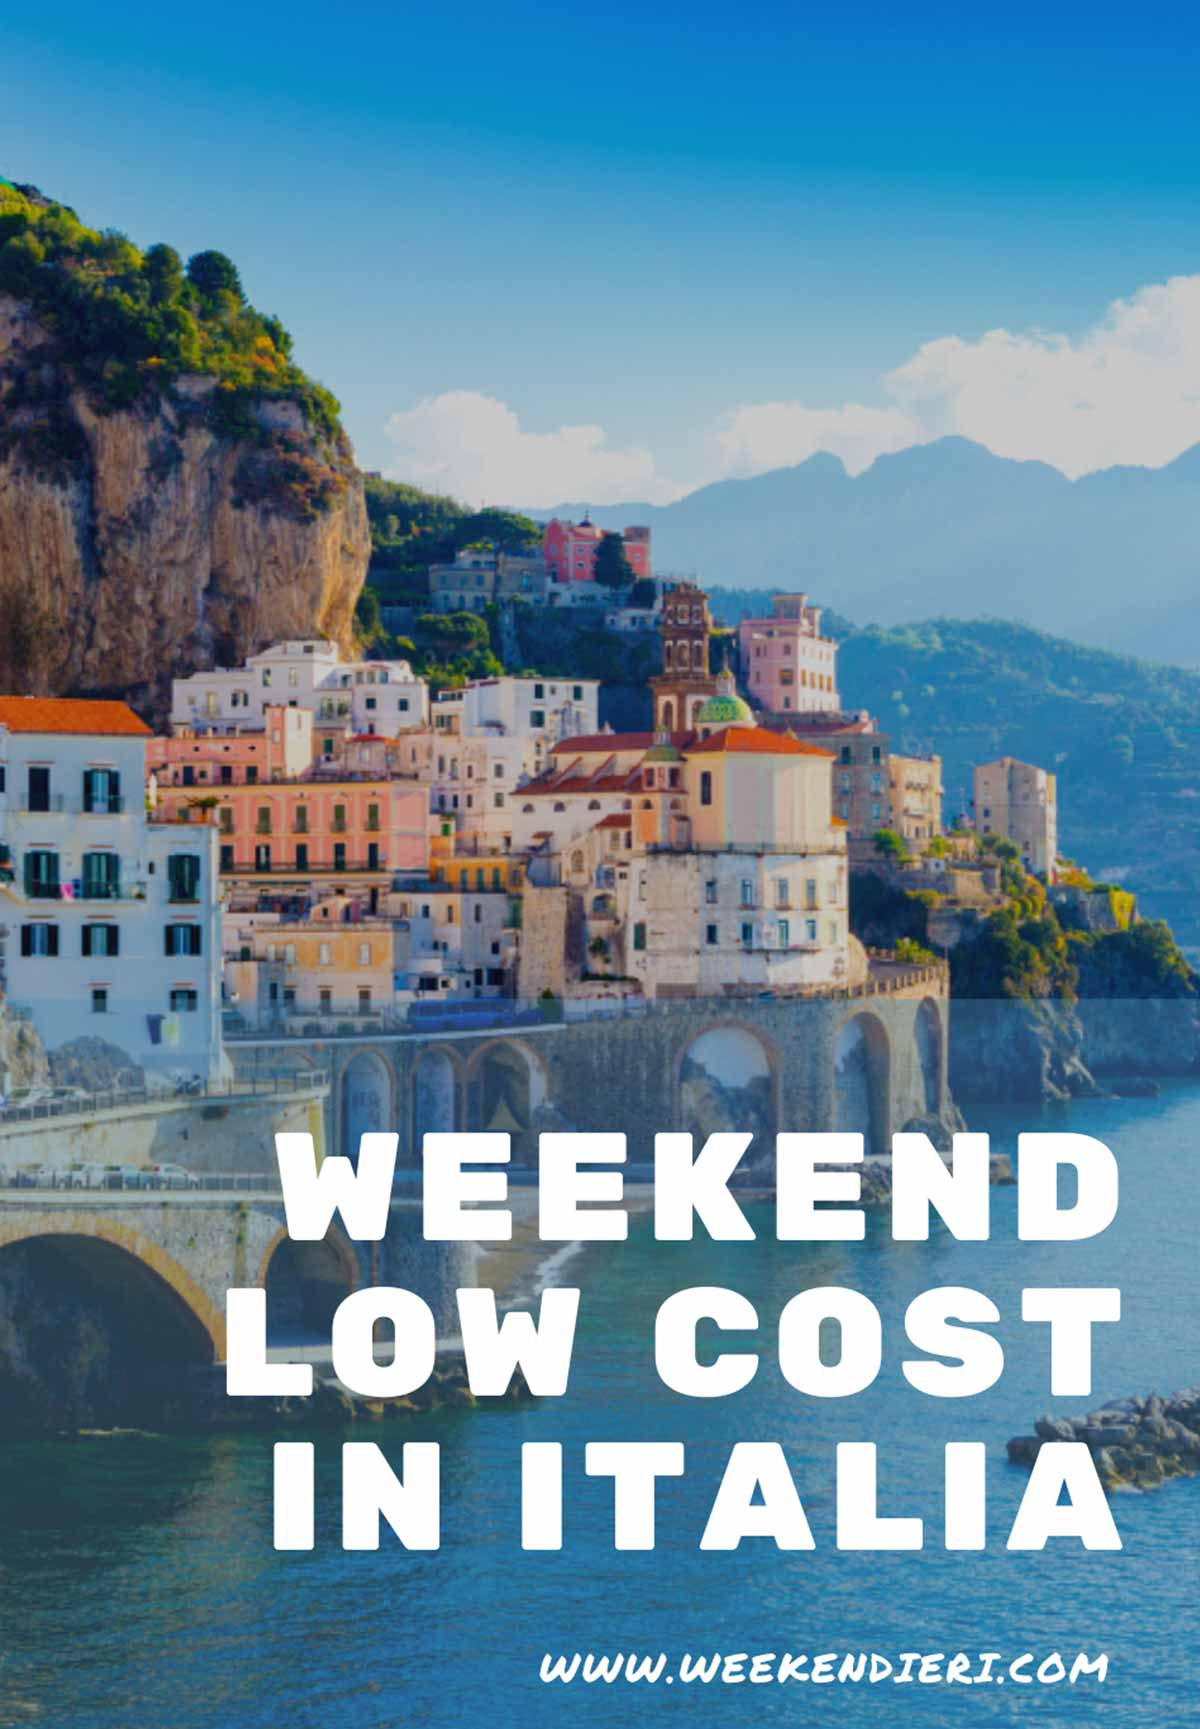 weekend low cost Italia